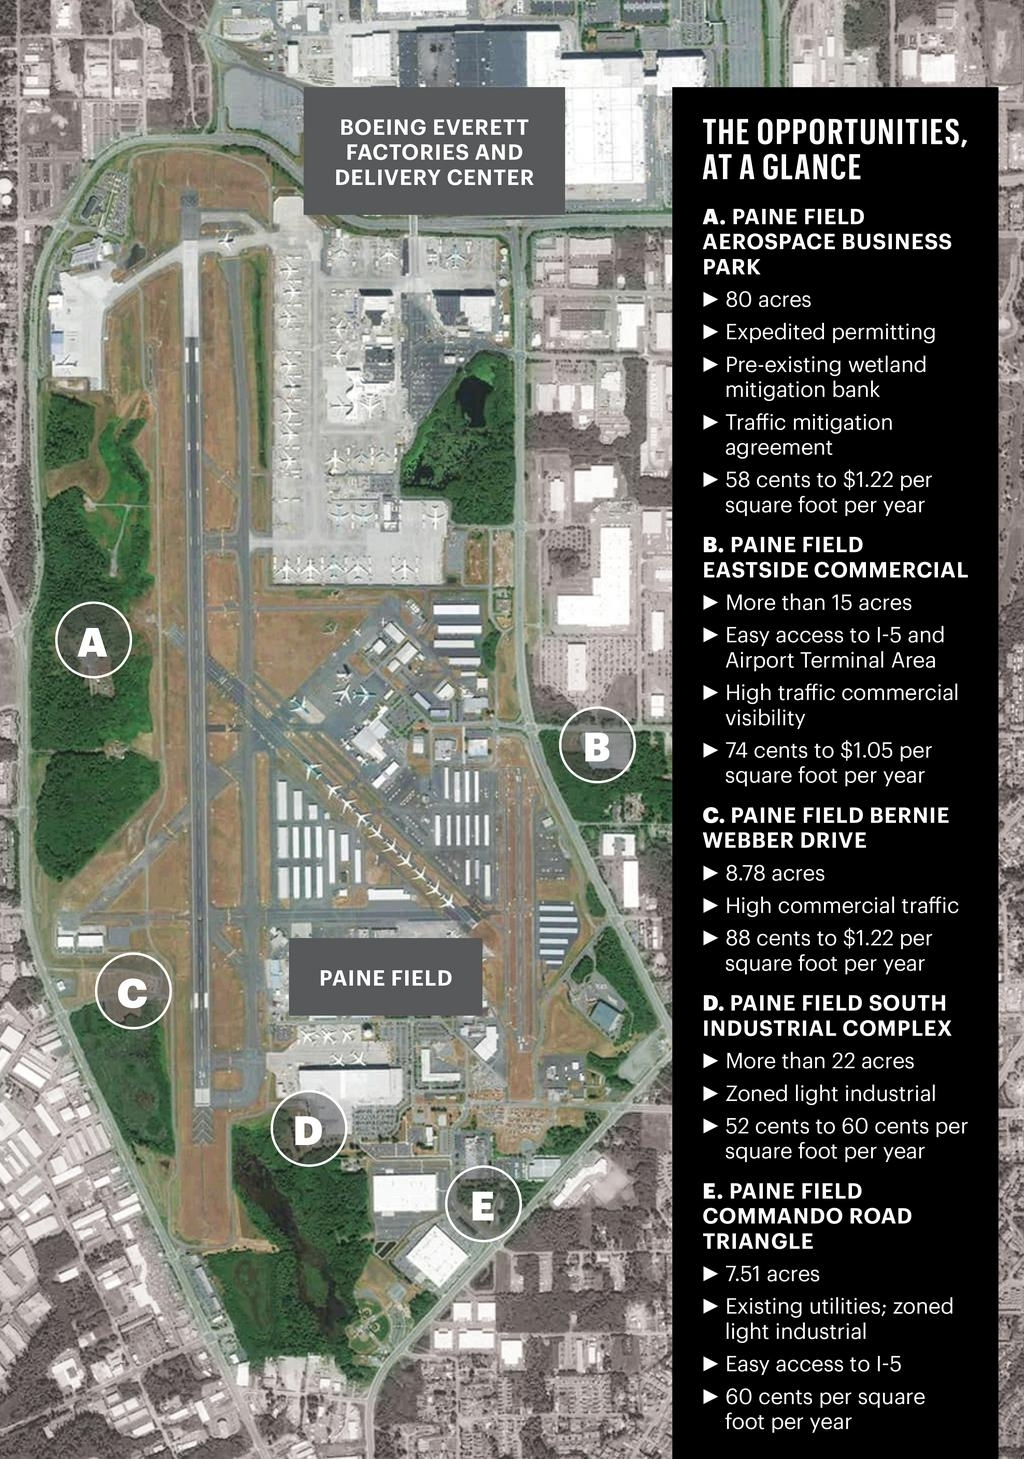 Want To Buildboeing? Paine Field Has Land Development with regard to Boeing Factory Everett Map